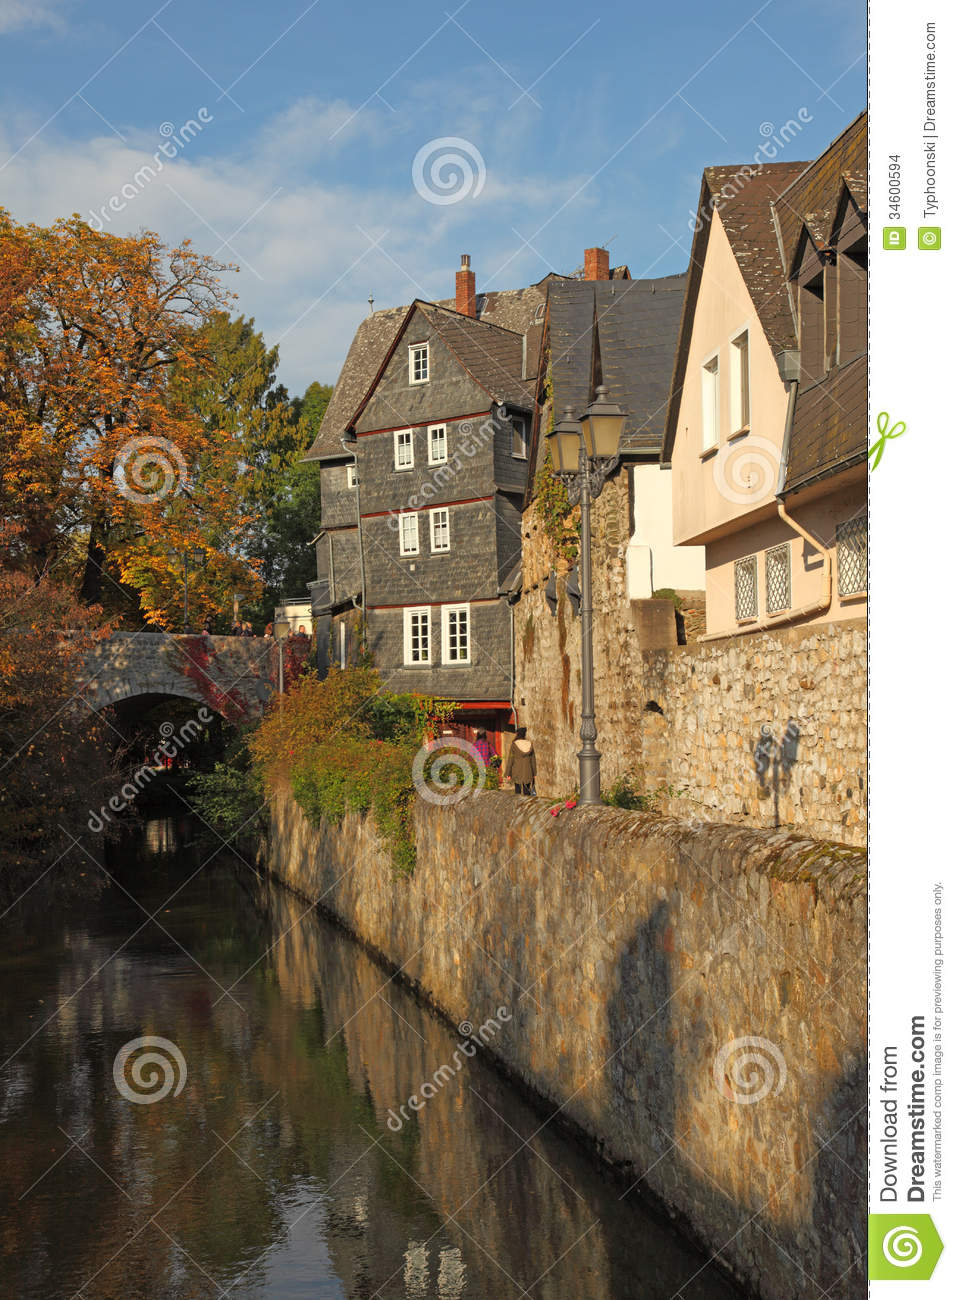 town wetzlar germany stock photo image of buildings 34600594. Black Bedroom Furniture Sets. Home Design Ideas